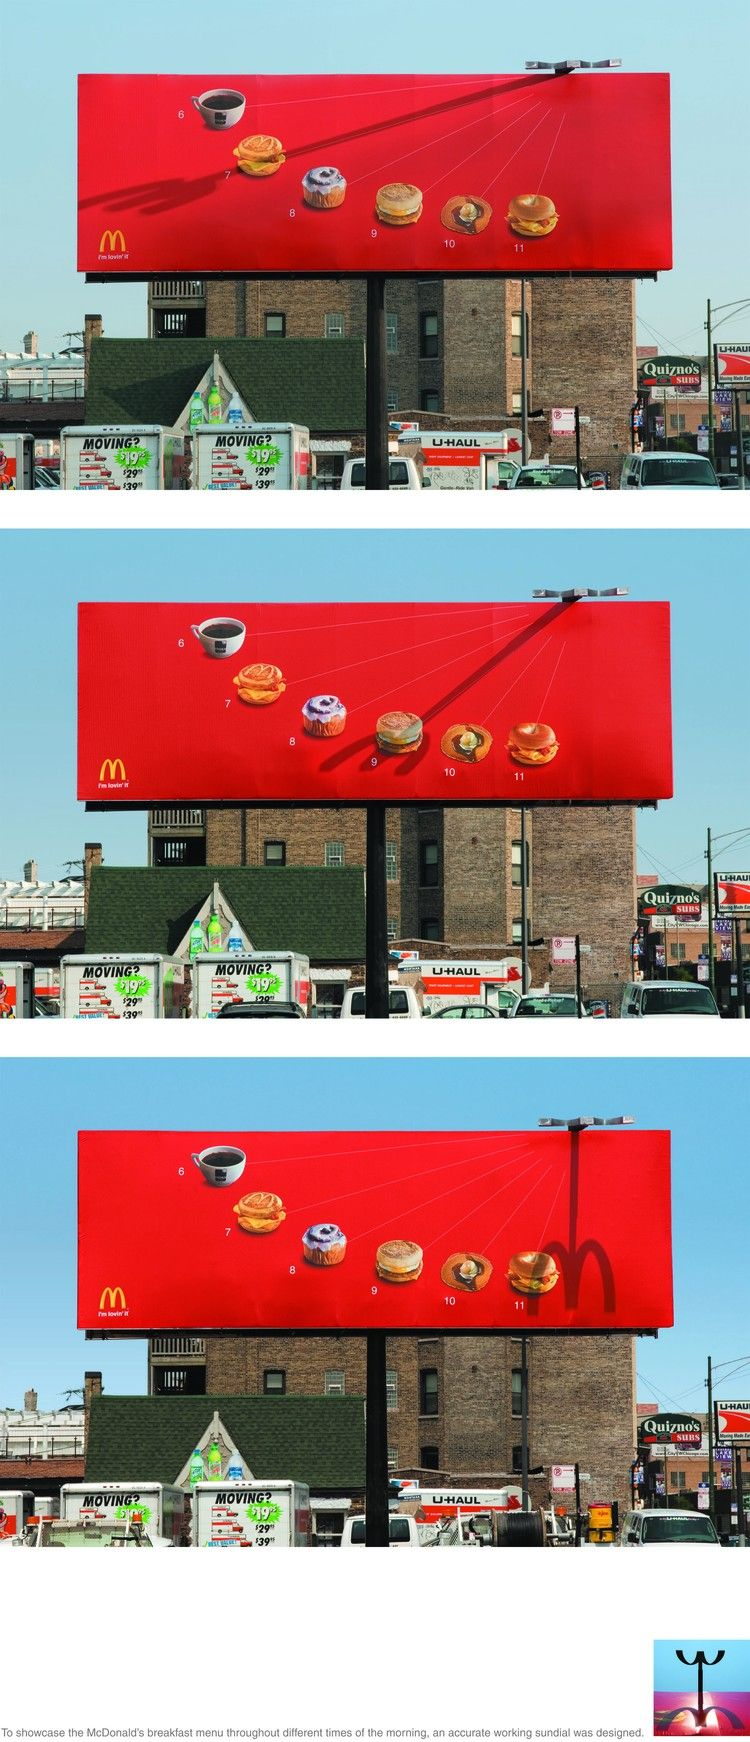 epic ad win1 This Fast Food Giant Is More Creative Than You